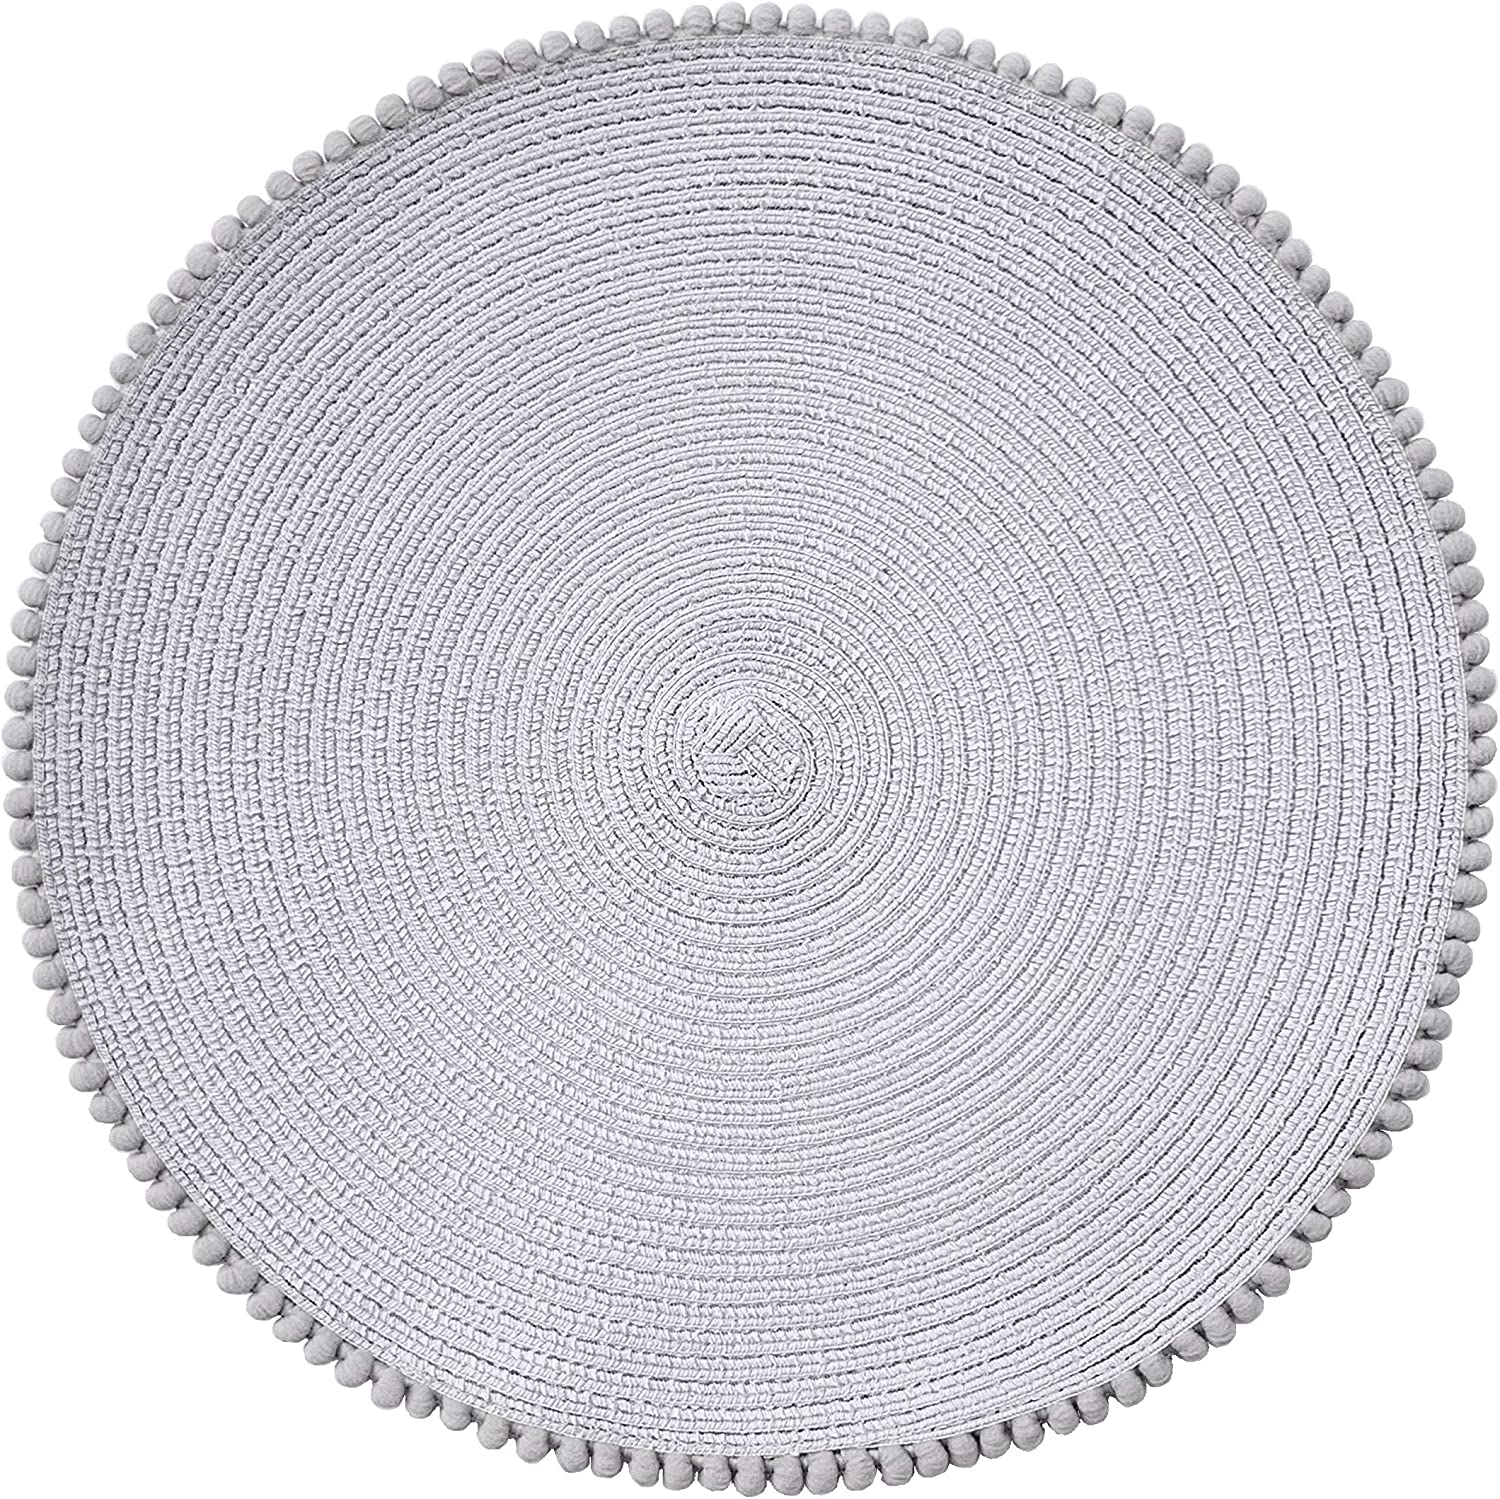 Round Placemats for Dining Table Set of 4, Size in 15 inches Diameter. Circular Place mat with pom poms Trim (Light Grey)